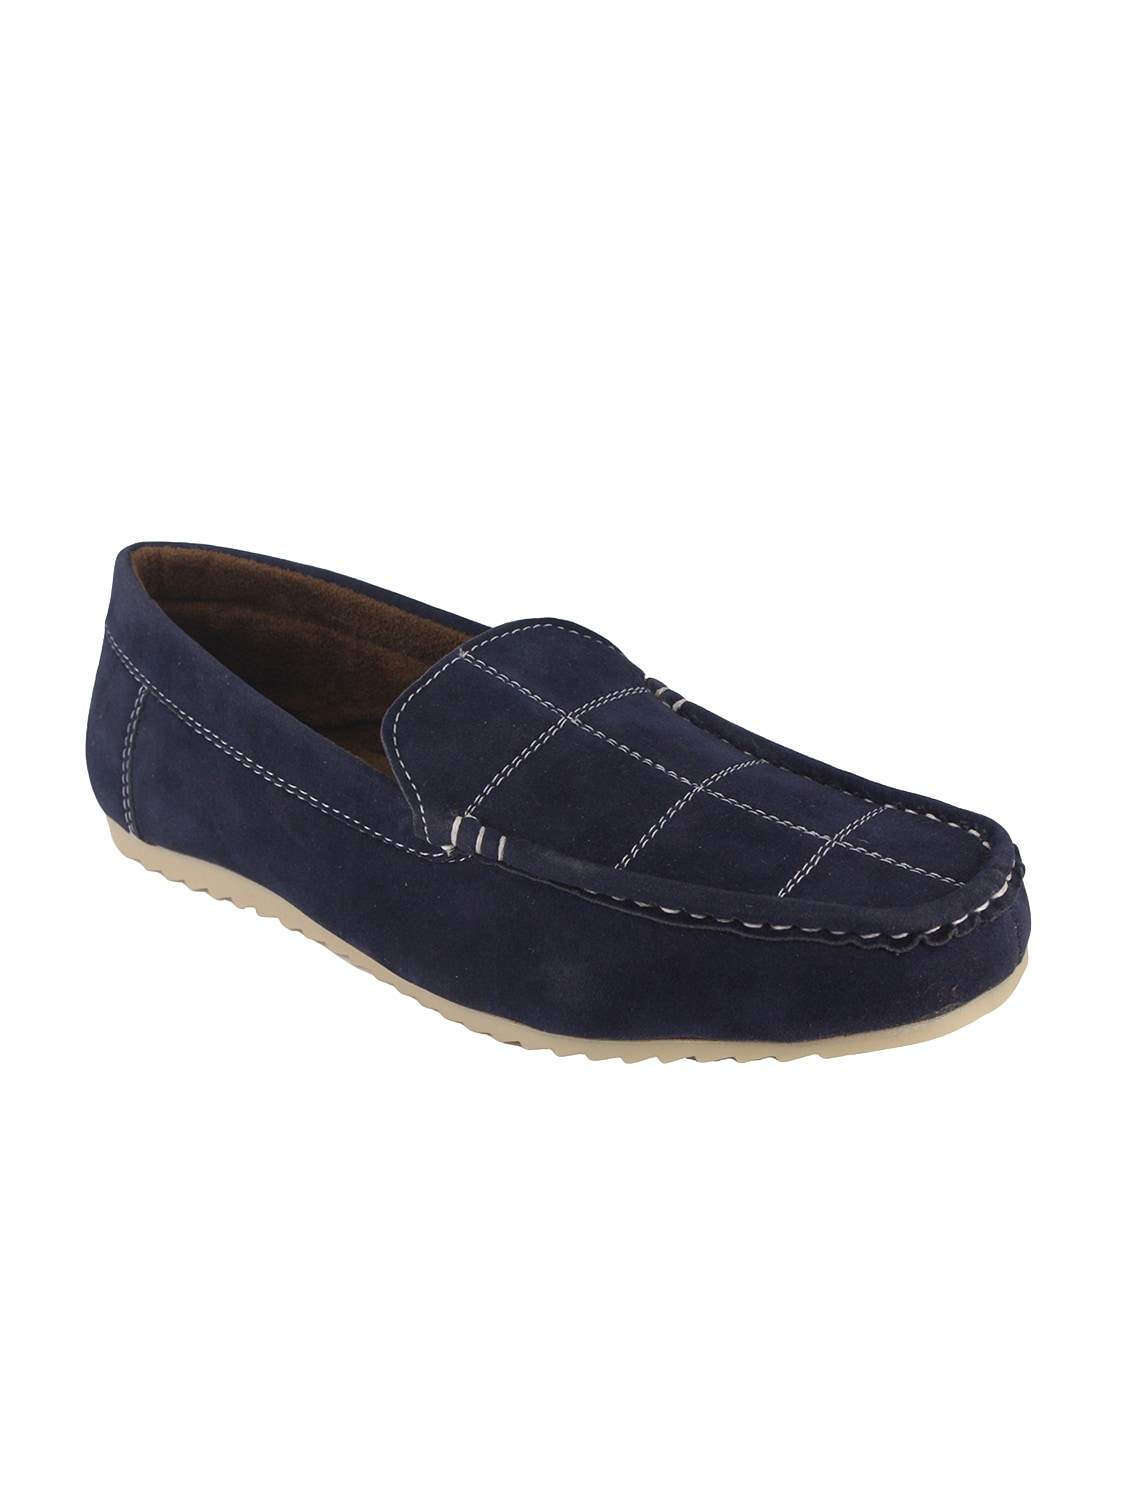 9063ffd5a28 Buy Blue Suede Slip On Loafer for Men from Leatherkraft for ₹549 at ...